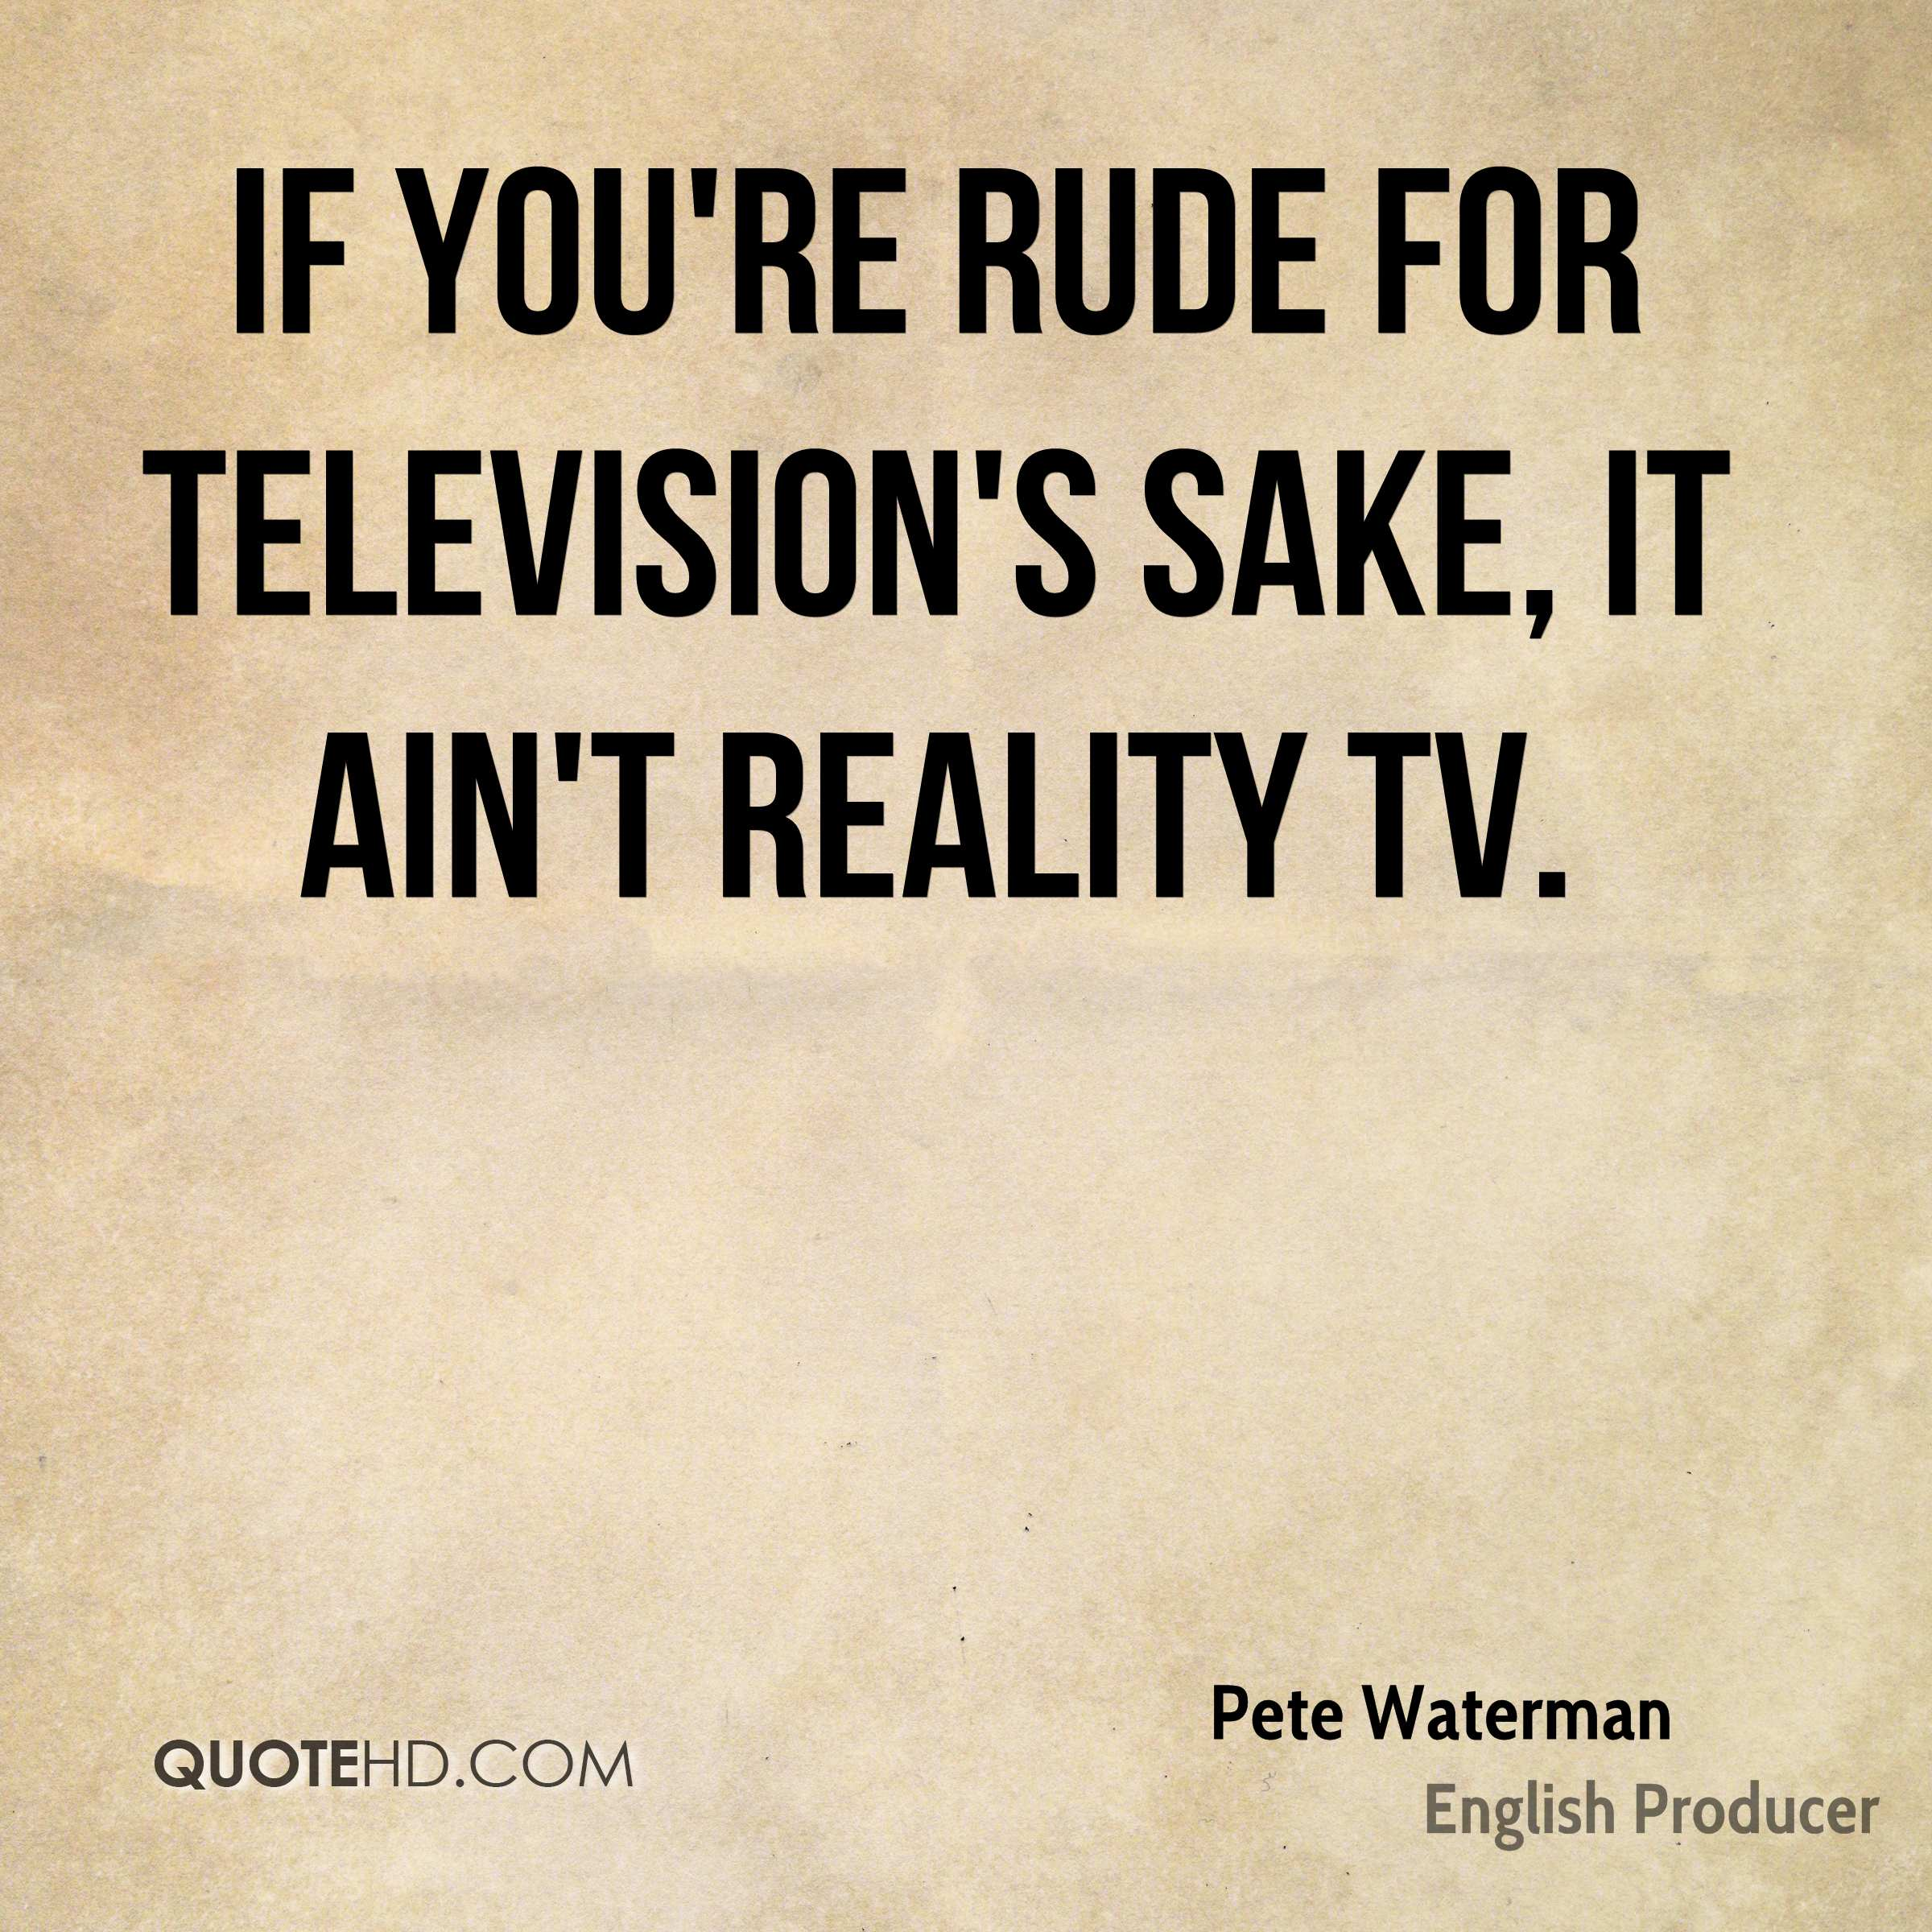 If you're rude for television's sake, it ain't reality TV.